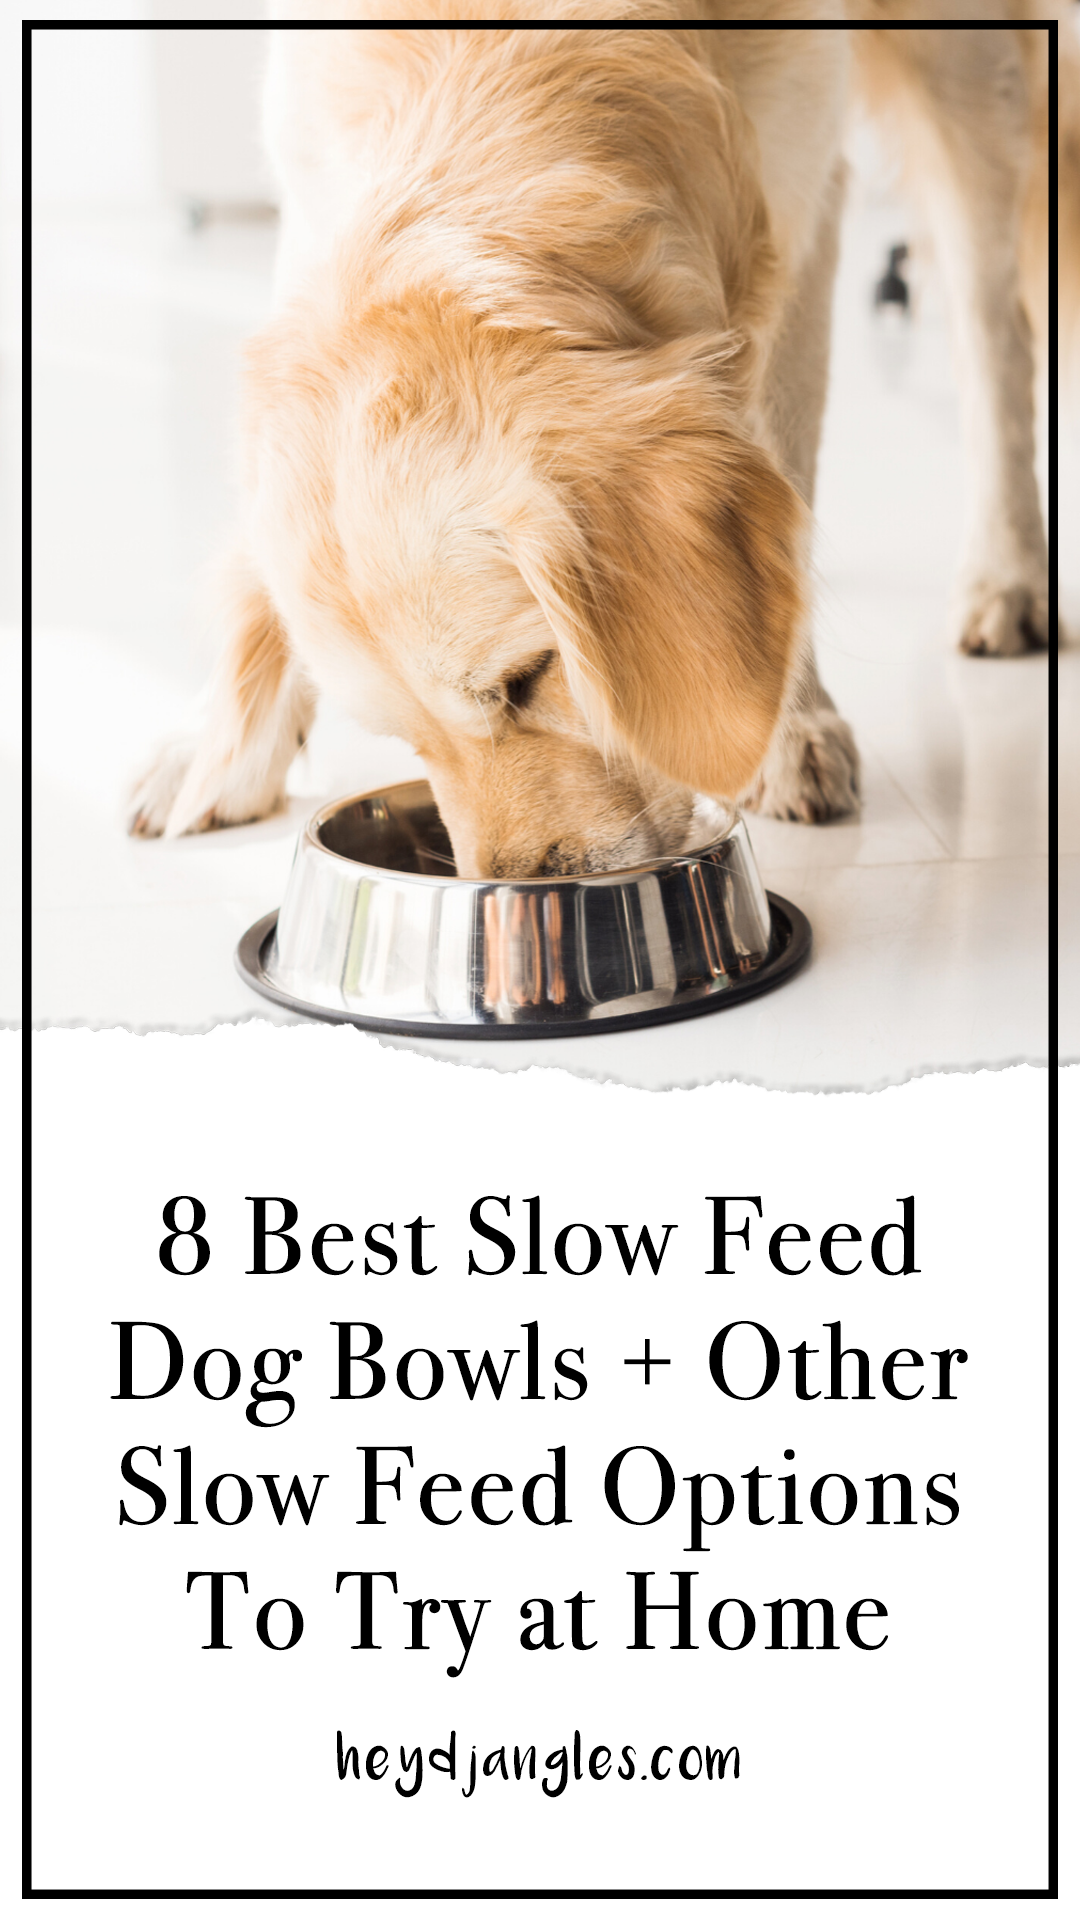 8 Best Dog Food Bowls for Fast Eaters and Other Slow-Feed Options to Try – heydjangles.com, slow feeder dog bowls, interactive dog toys, treat dispensing dog toys #doglover #slowfeeder